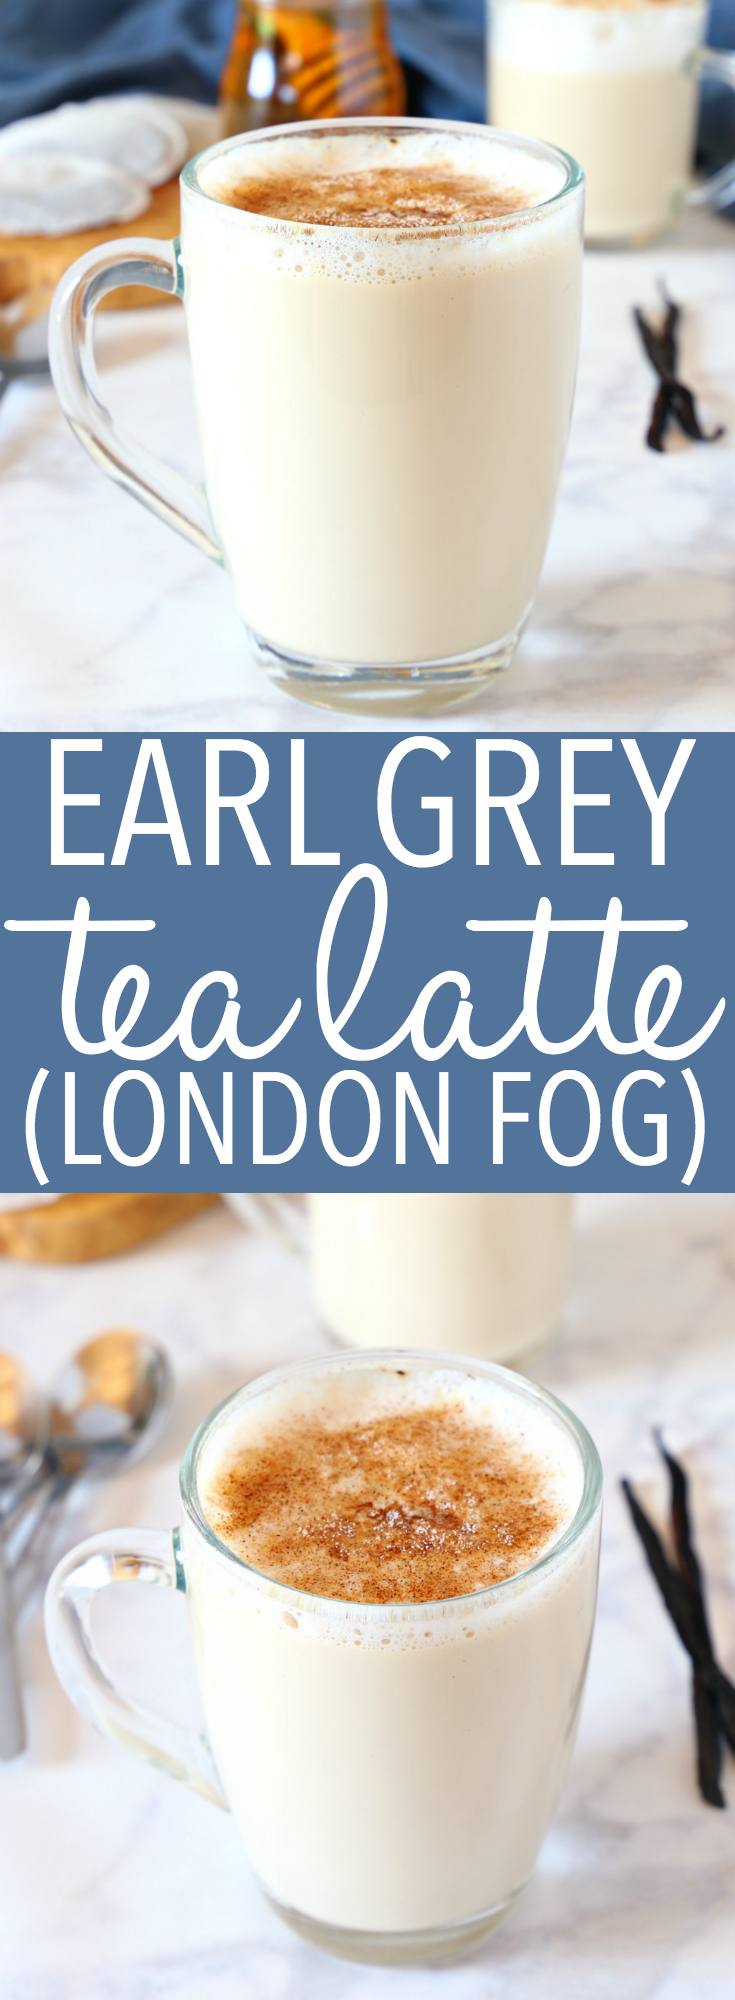 This Earl Grey Vanilla Tea Latte or London Fog is a simply delicious and popular coffee shop drink that's so easy to make at home! And it calls for real, healthy ingredients - it's low in fat, can be made dairy-free, and it's free of refined sugars! Recipe from thebusybaker.ca! #earlgrey #tealatte #tea #drink #hotdrink #christmas #winter #comfortfood #fall #sugarfree #honey #naturallysweetened #healthy #lowfat #dairyfree via @busybakerblog